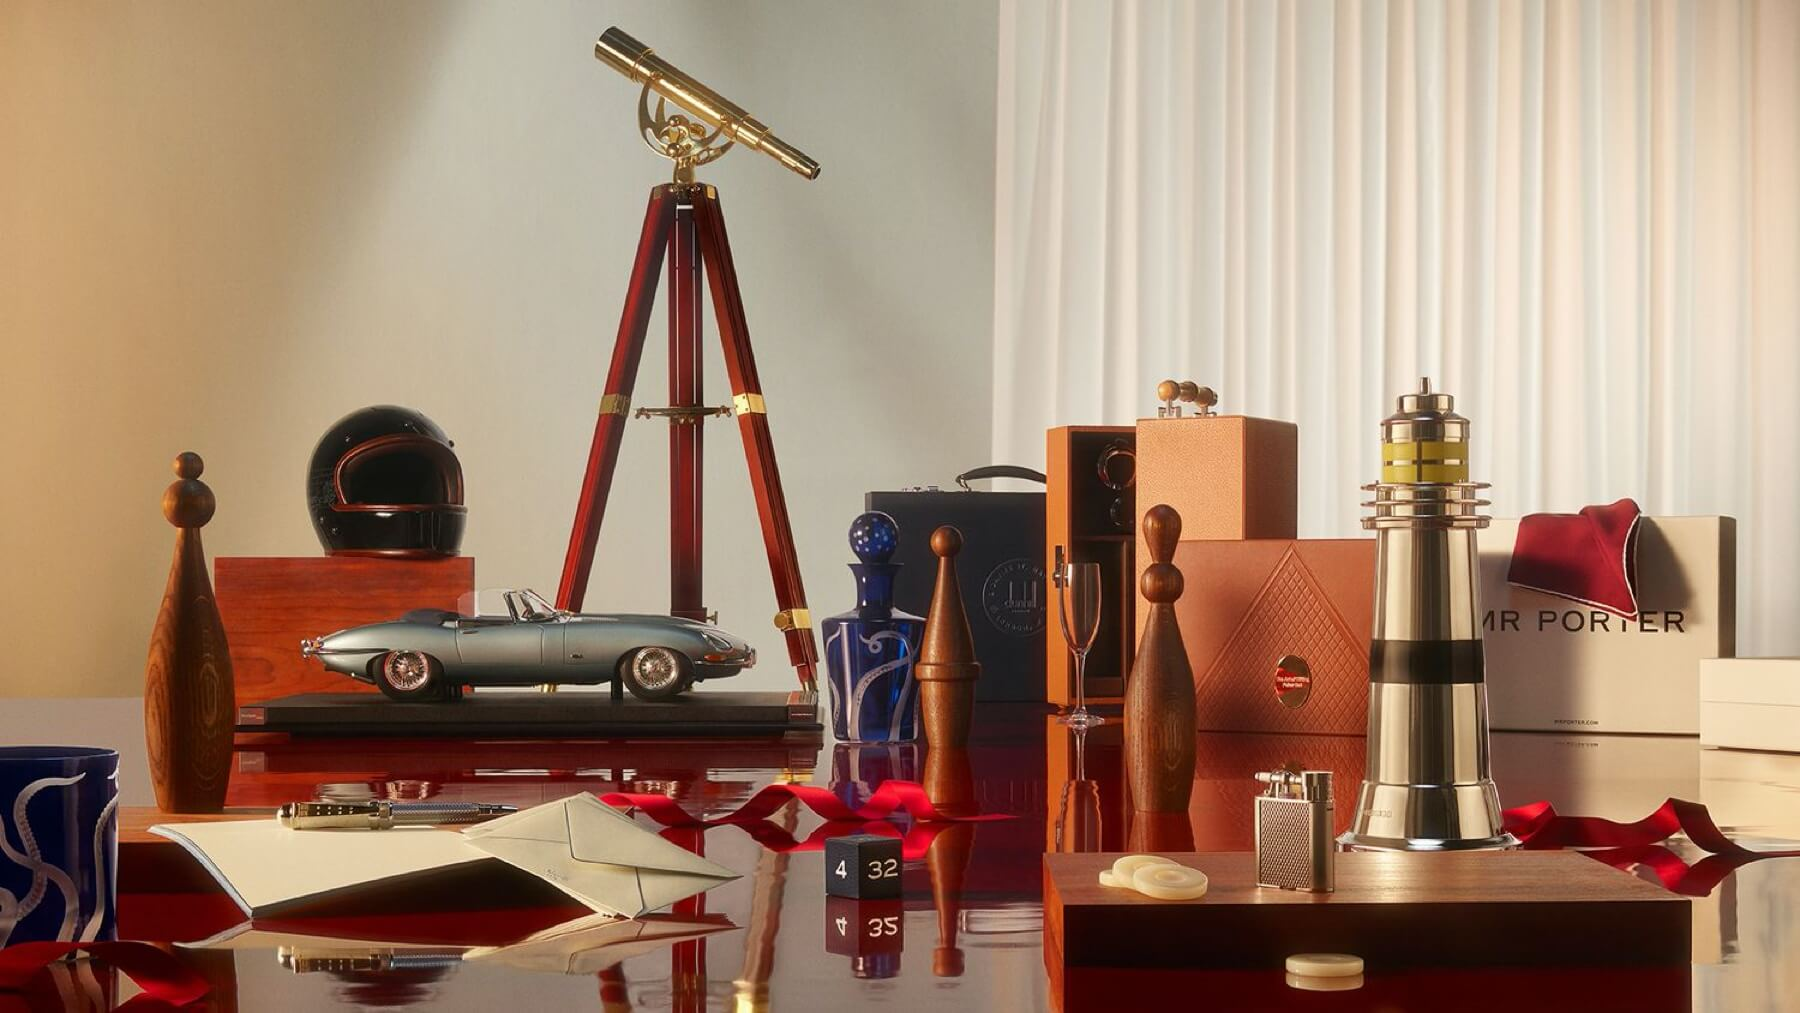 MR PORTER and NET-A-PORTER holiday gift guide